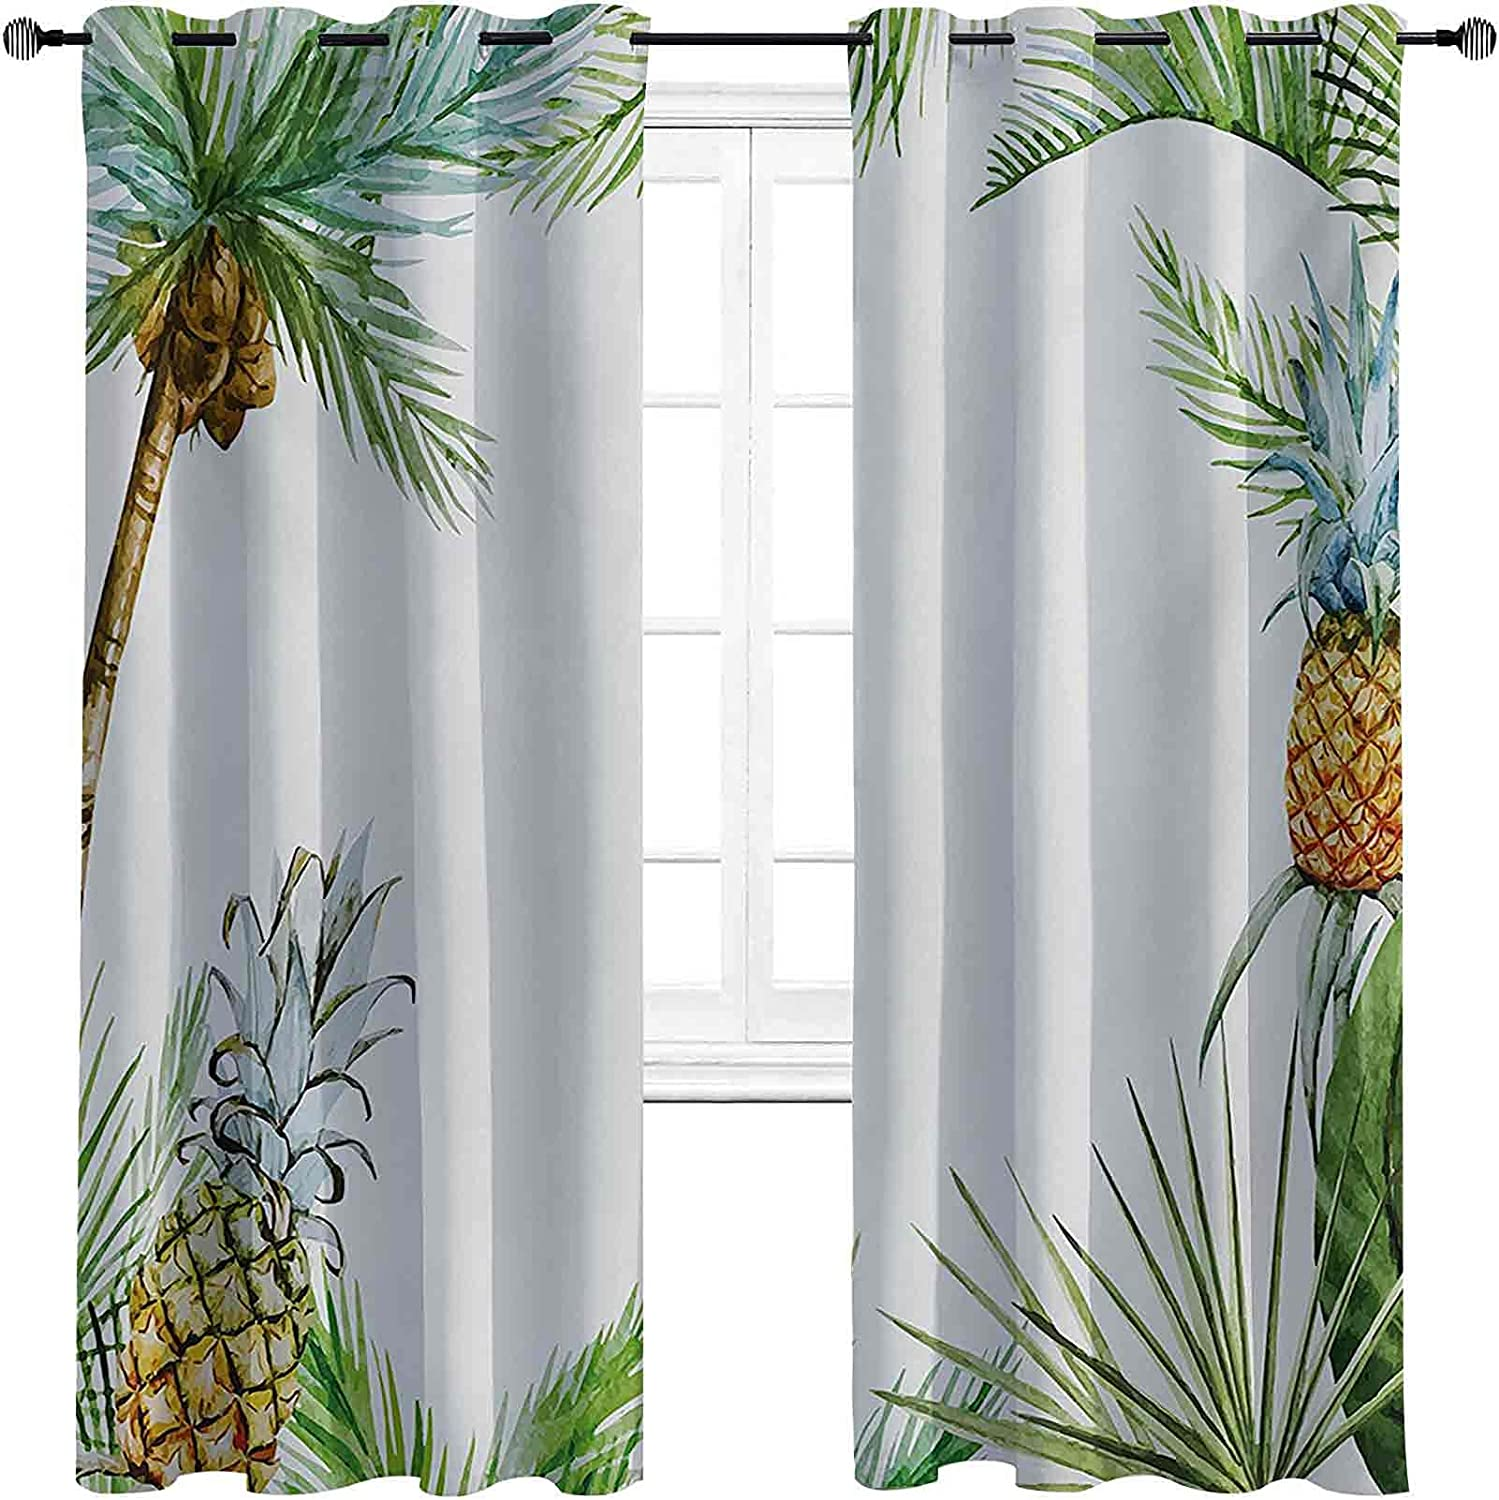 Pine Colorado Springs Mall Shading Insulated Curtain Tropical Style Watercolor Island NEW before selling ☆